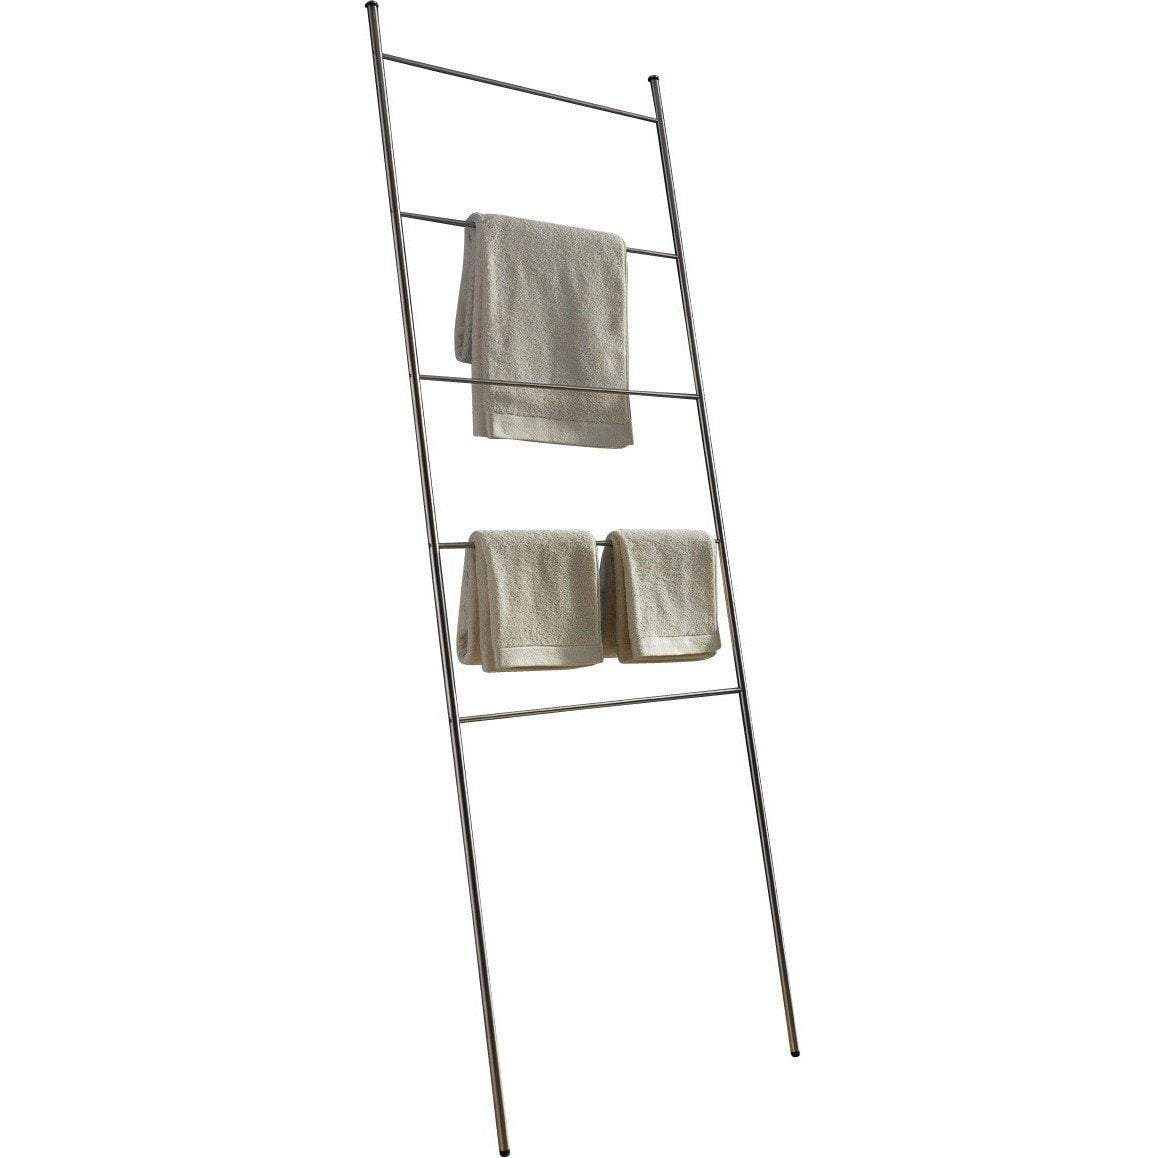 PSBA Standing Towel Rack Ladder for Bathroom Spa Towel Hanger, Steel Matte